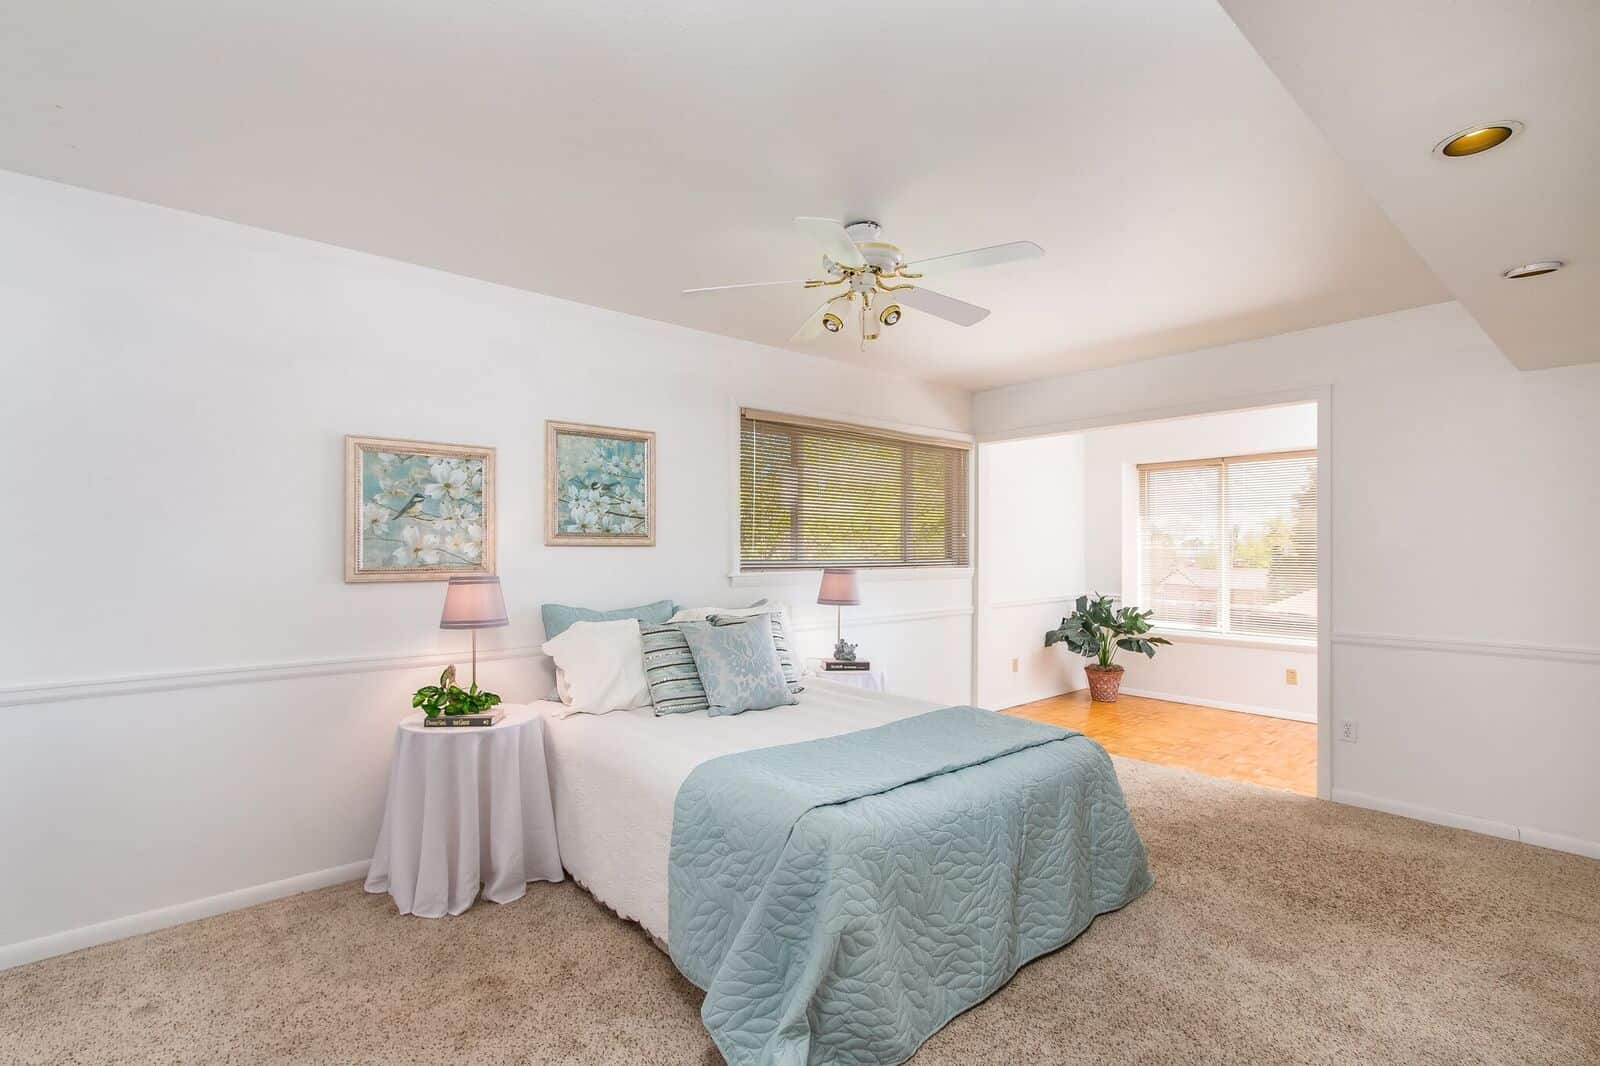 Main Level Master Bedroom with Sunroom